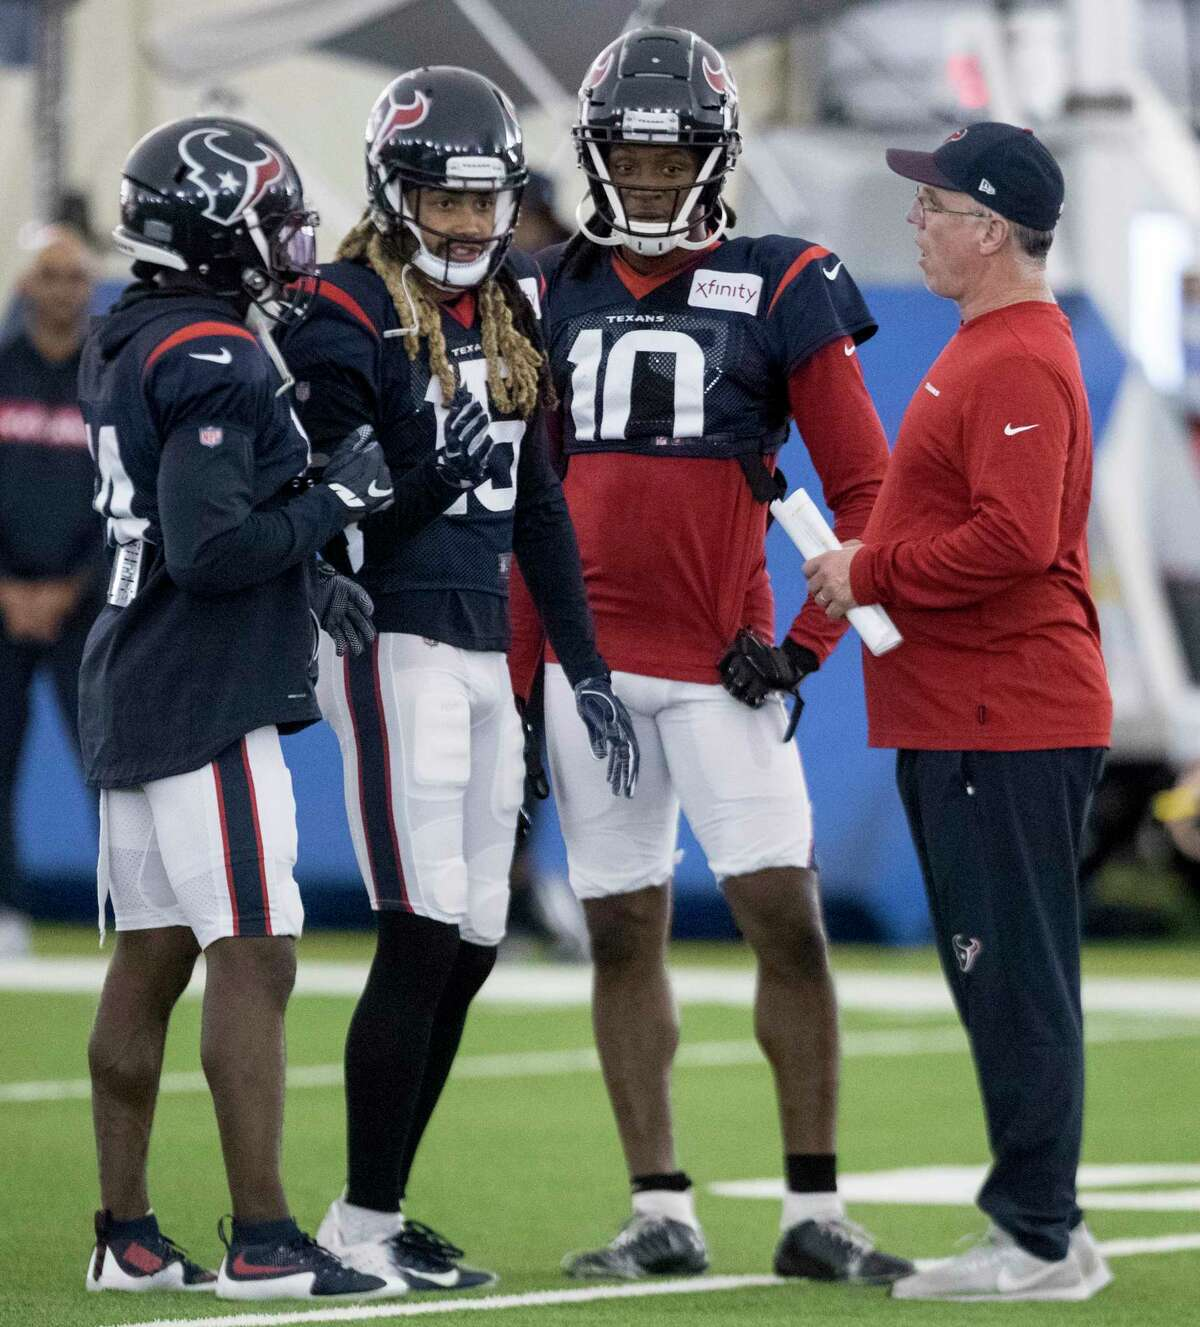 Houston Texans receivers coach John Perry, right, works with wide receivers DeAndre Carter (14), Will Fuller (15) and DeAndre Hopkins (10) during training camp at the Methodist Training Center on Tuesday, Aug. 20, 2019, in Houston.